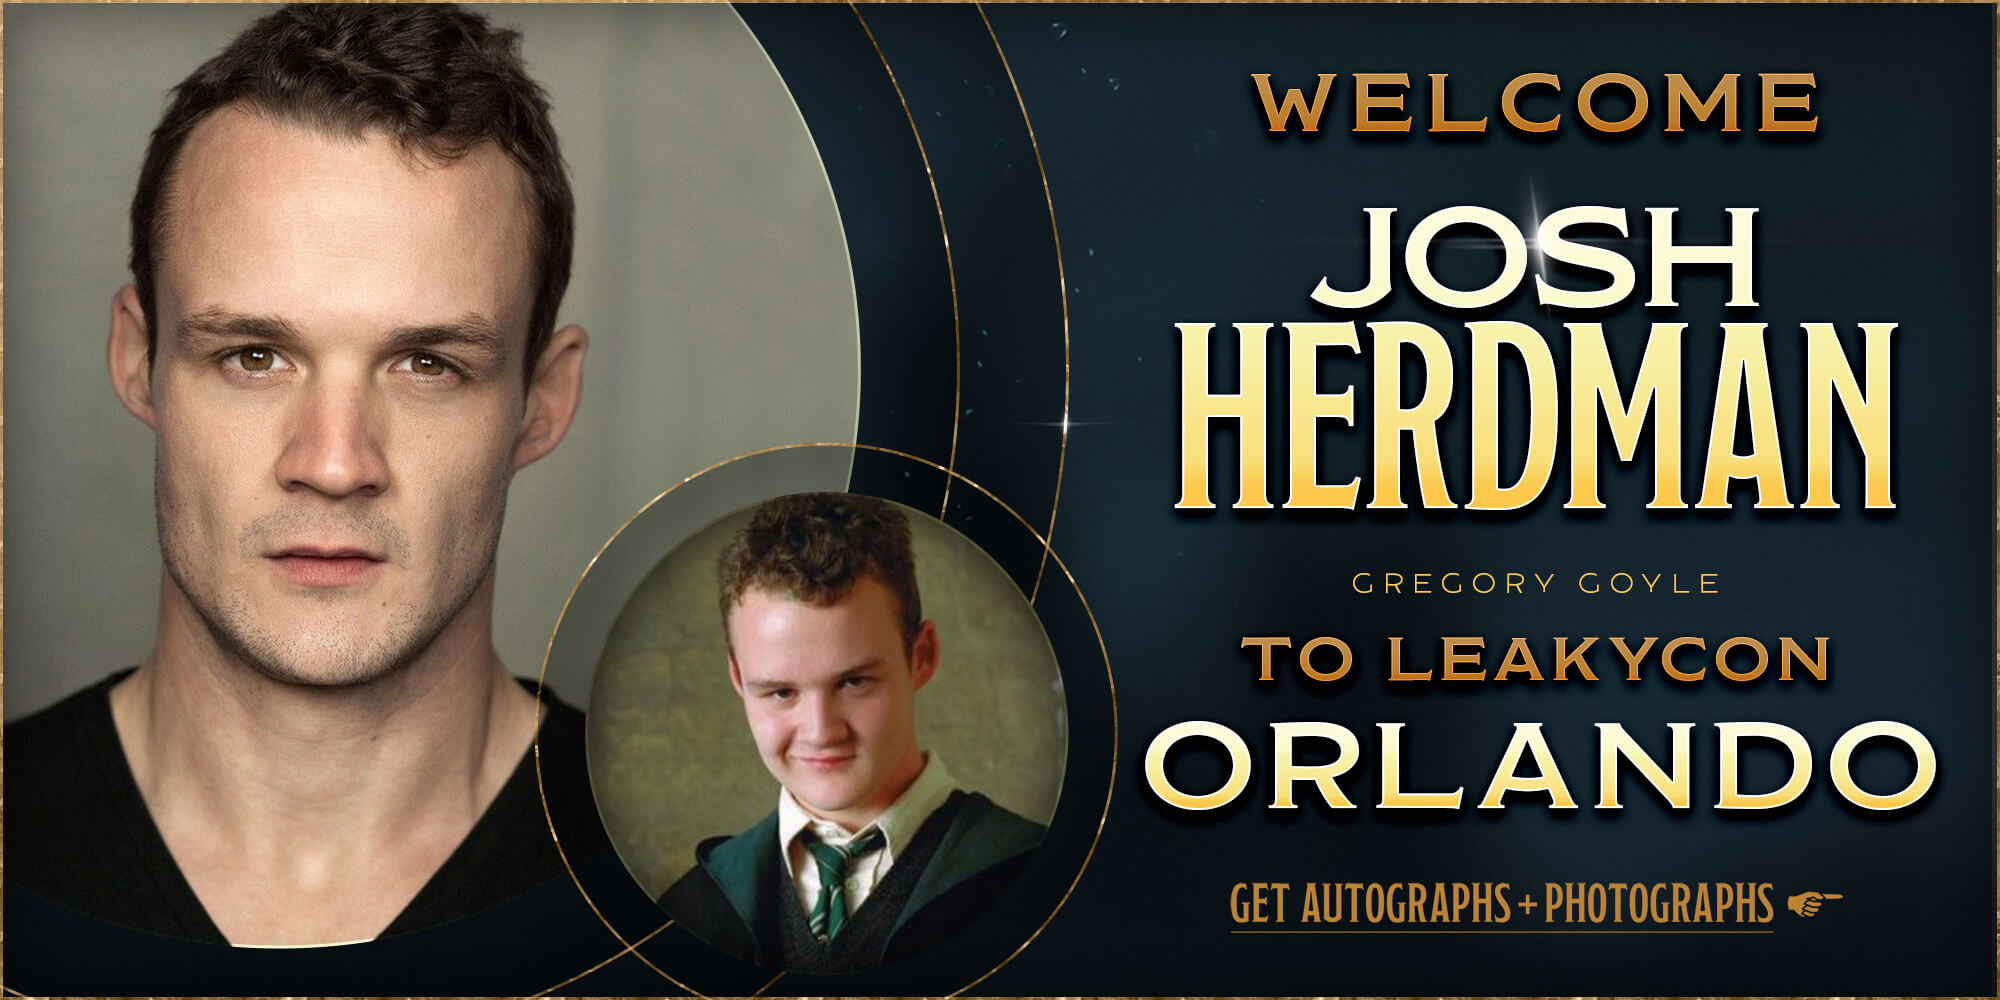 Welcome Josh Herdman to LeakyCon Orlando!